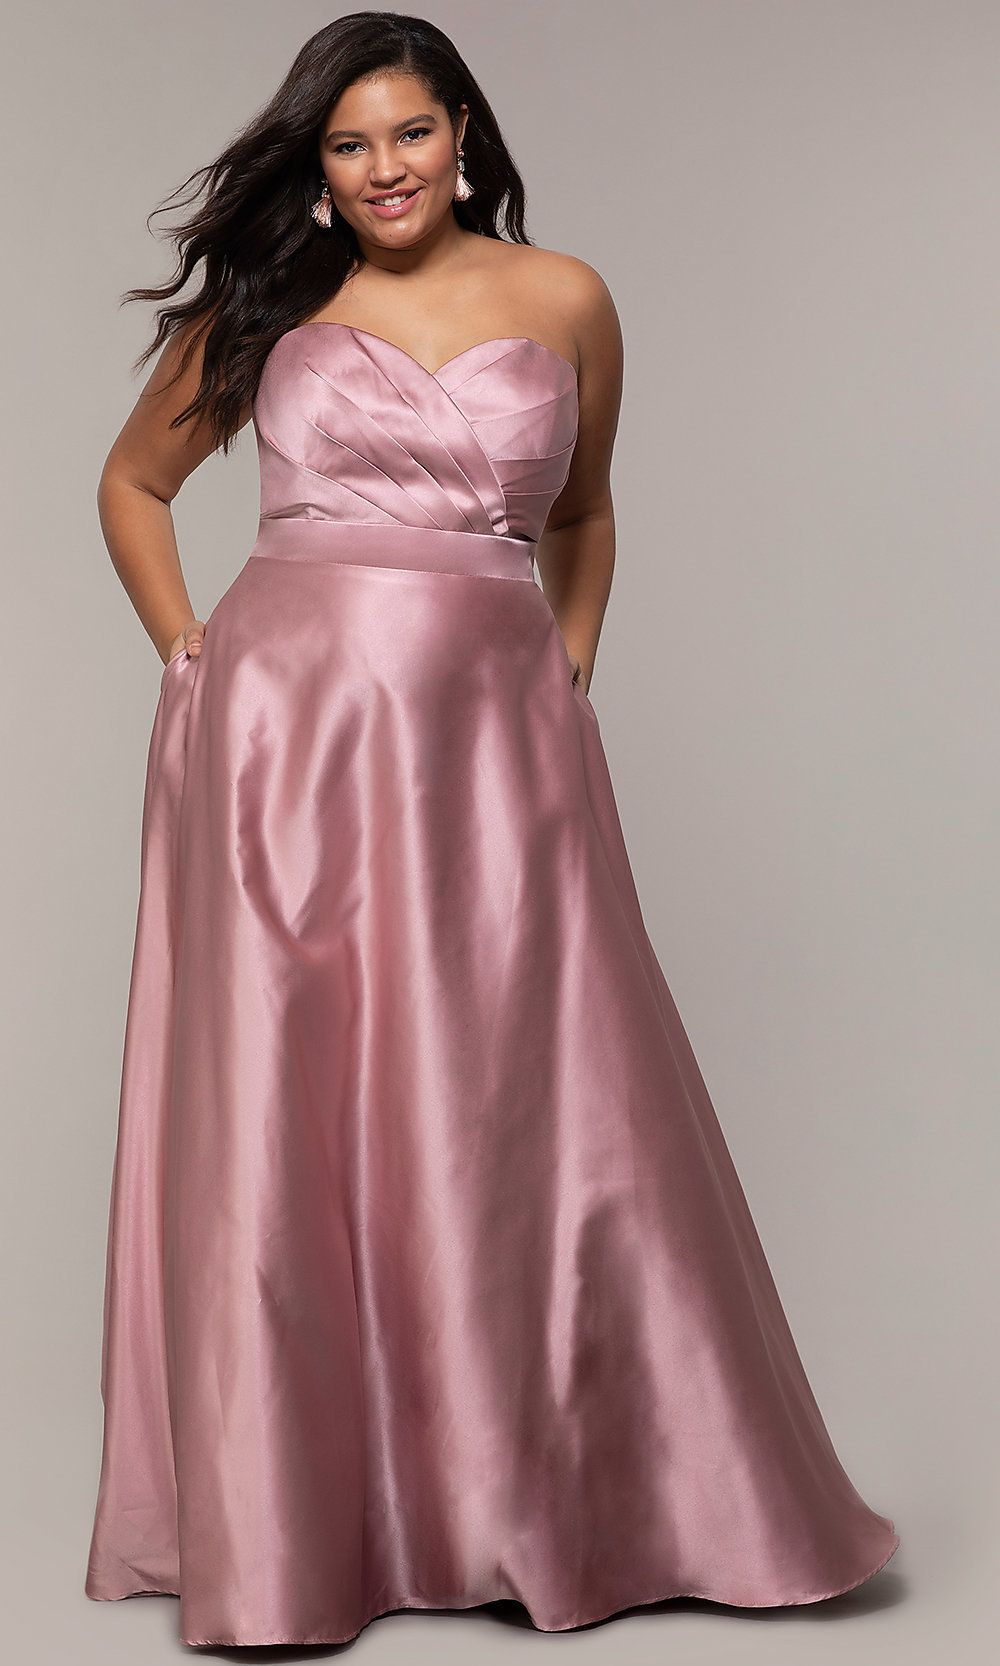 Corset plussize long formal dress with pockets in 2020